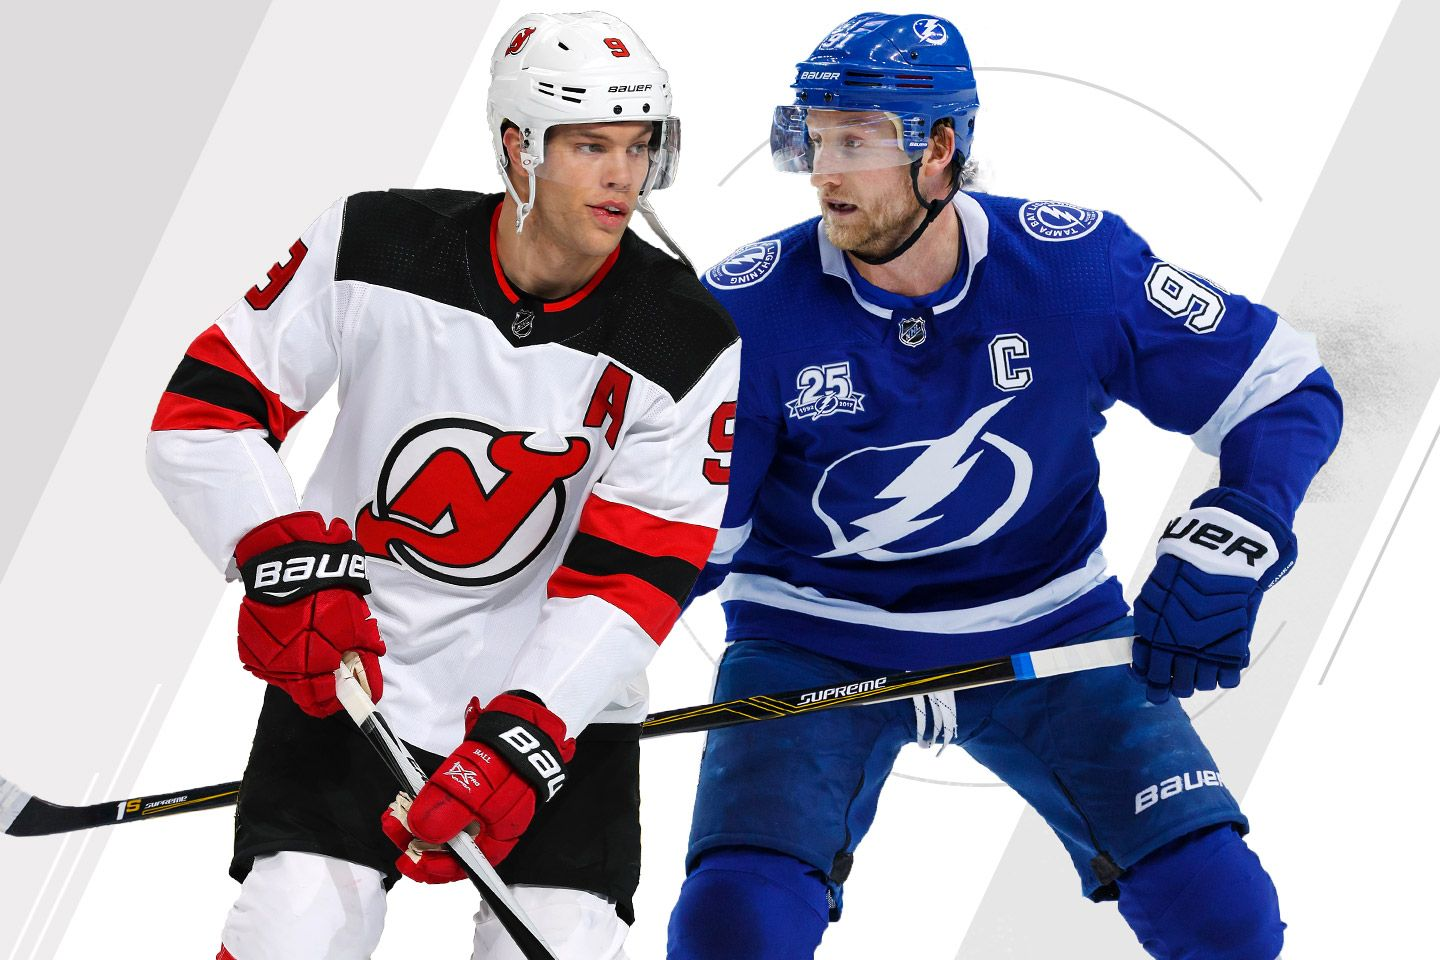 59fbfe32a 2018 Stanley Cup Playoffs - Tampa Bay Lightning vs. New Jersey ...